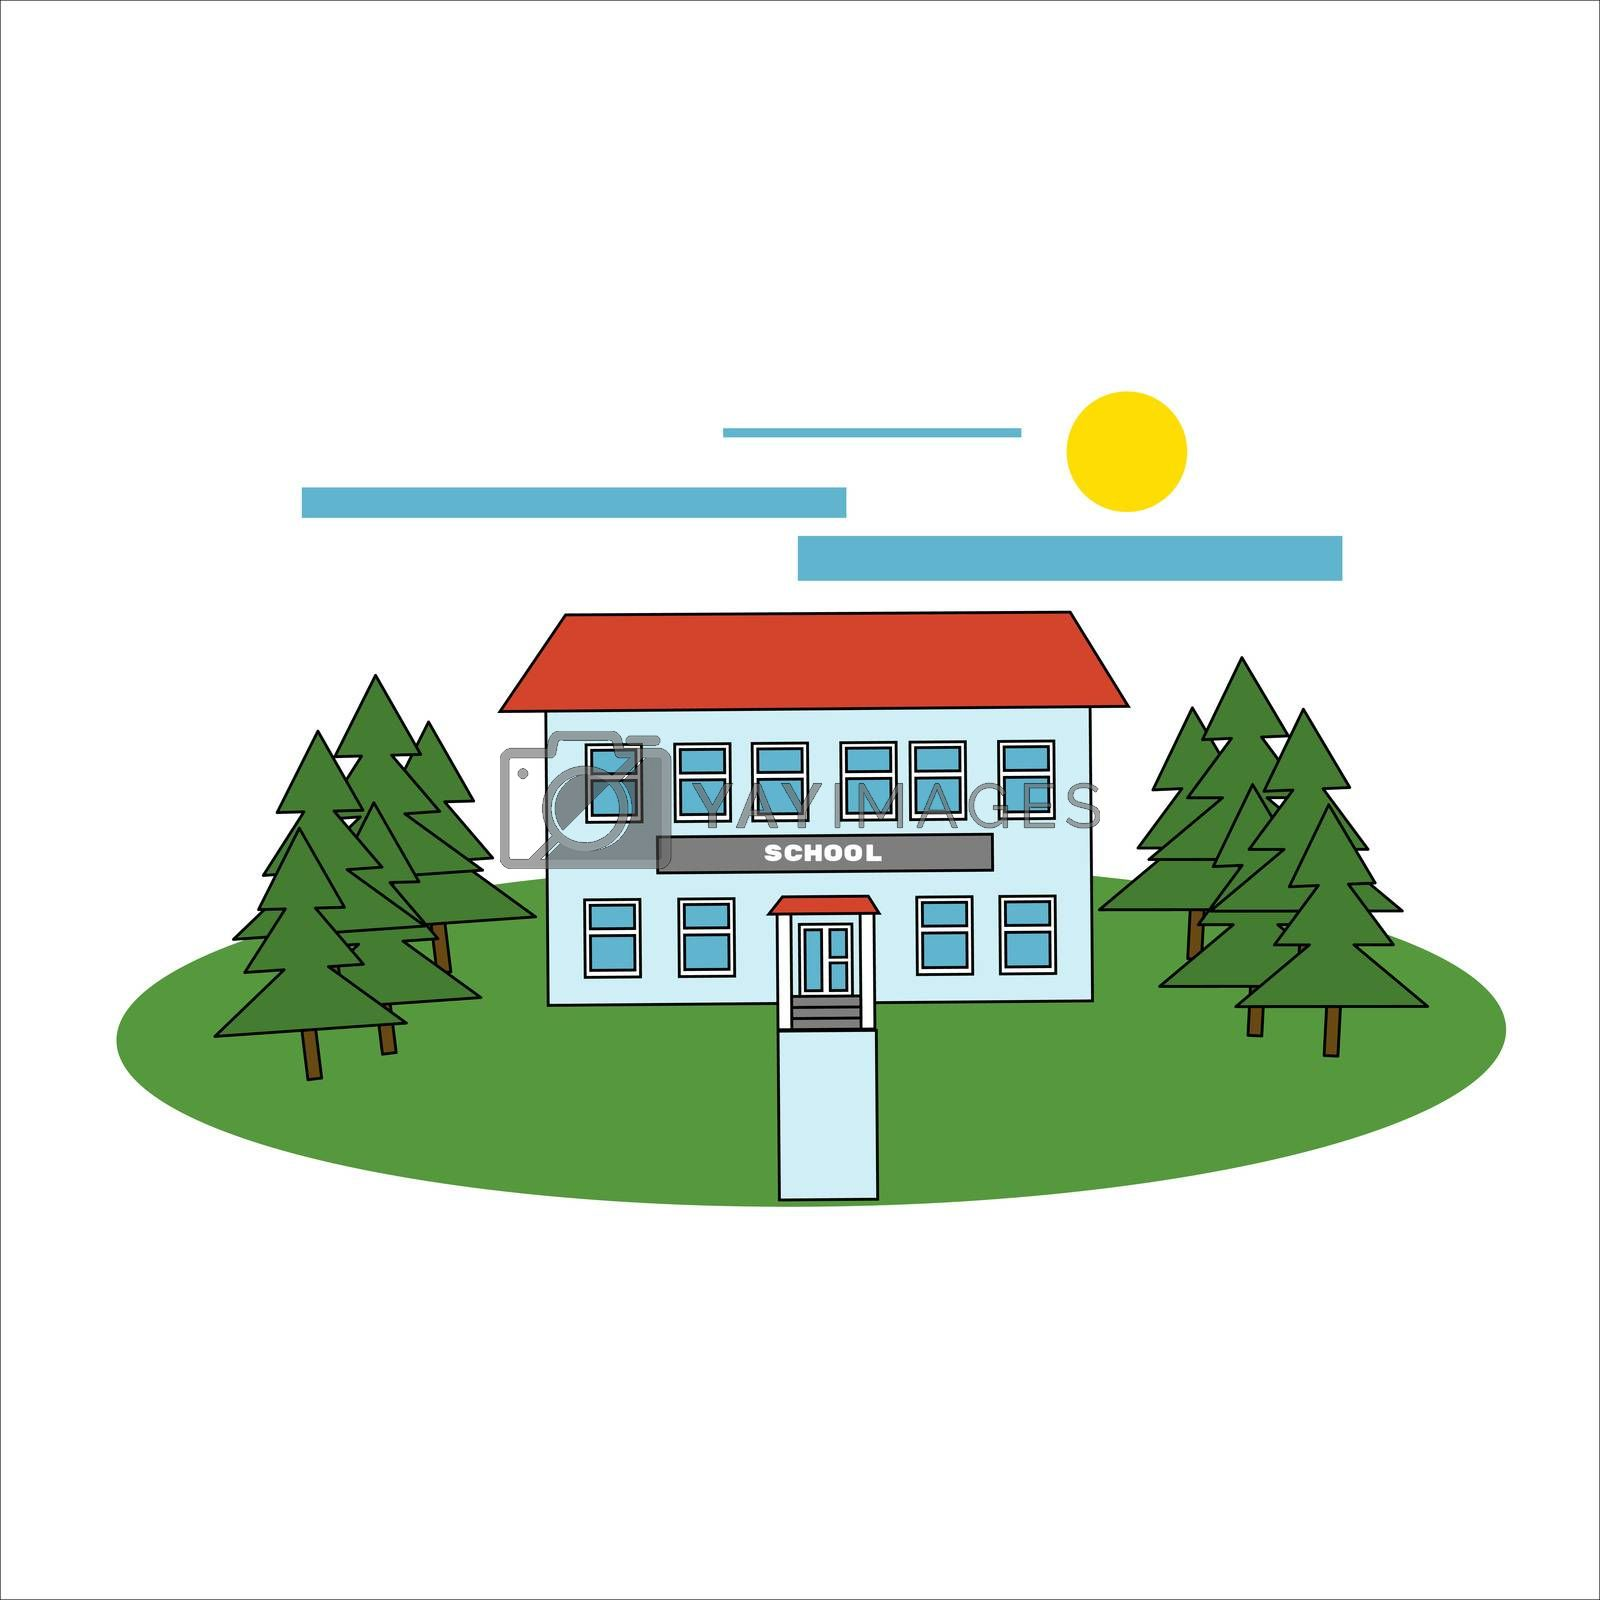 School building and bus. illustration in filled outline style